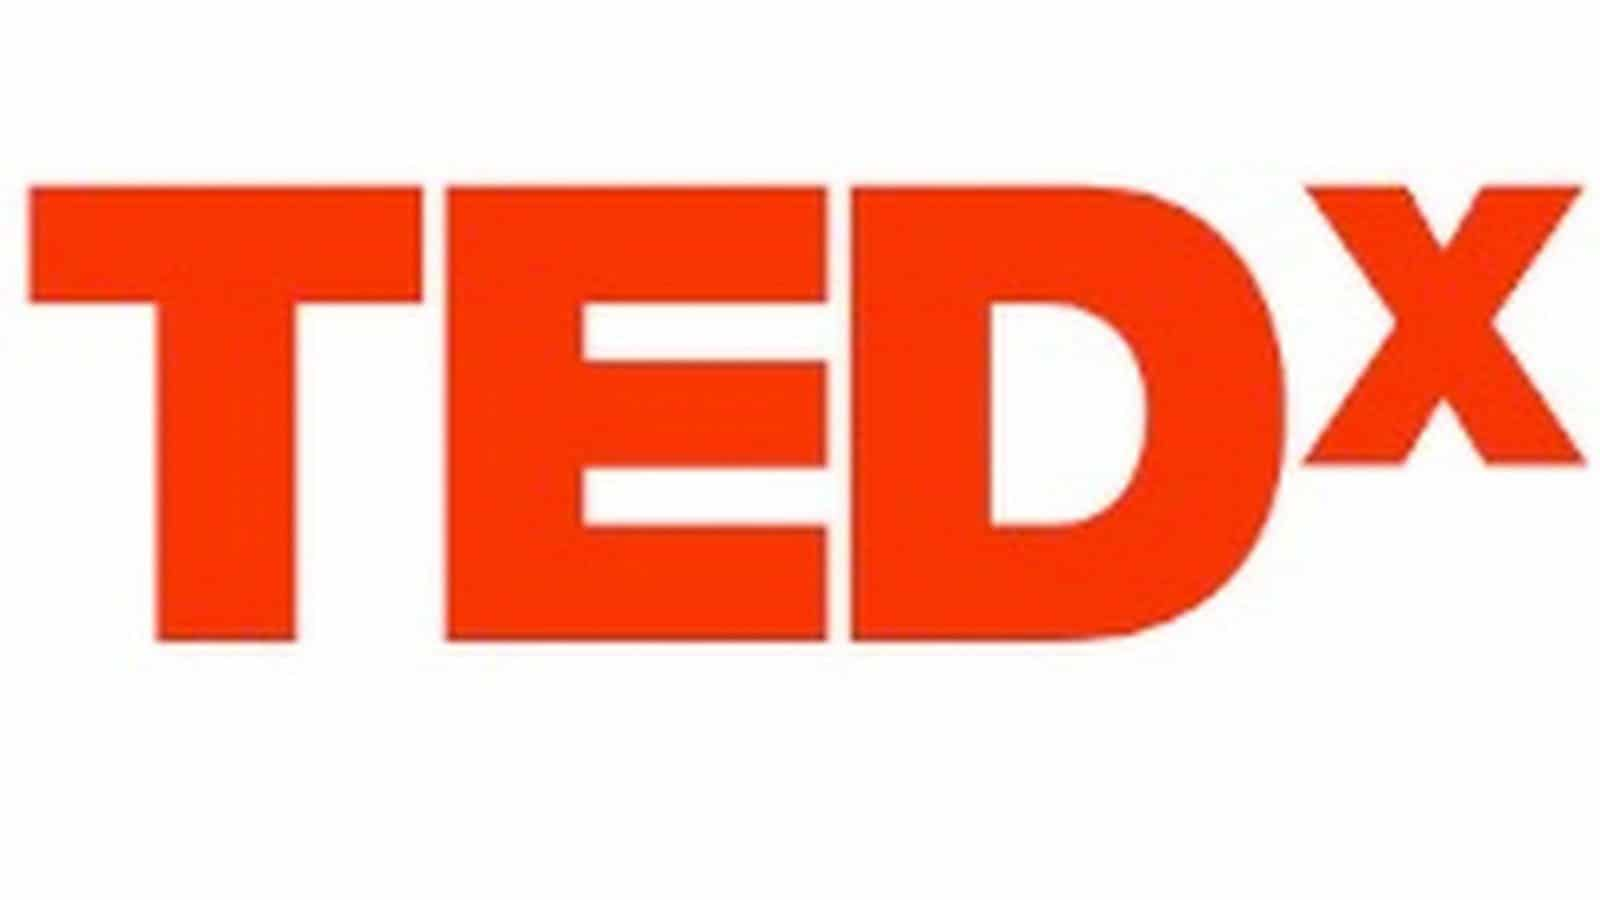 TEDx: Not finding a great idea, but solving the right problem